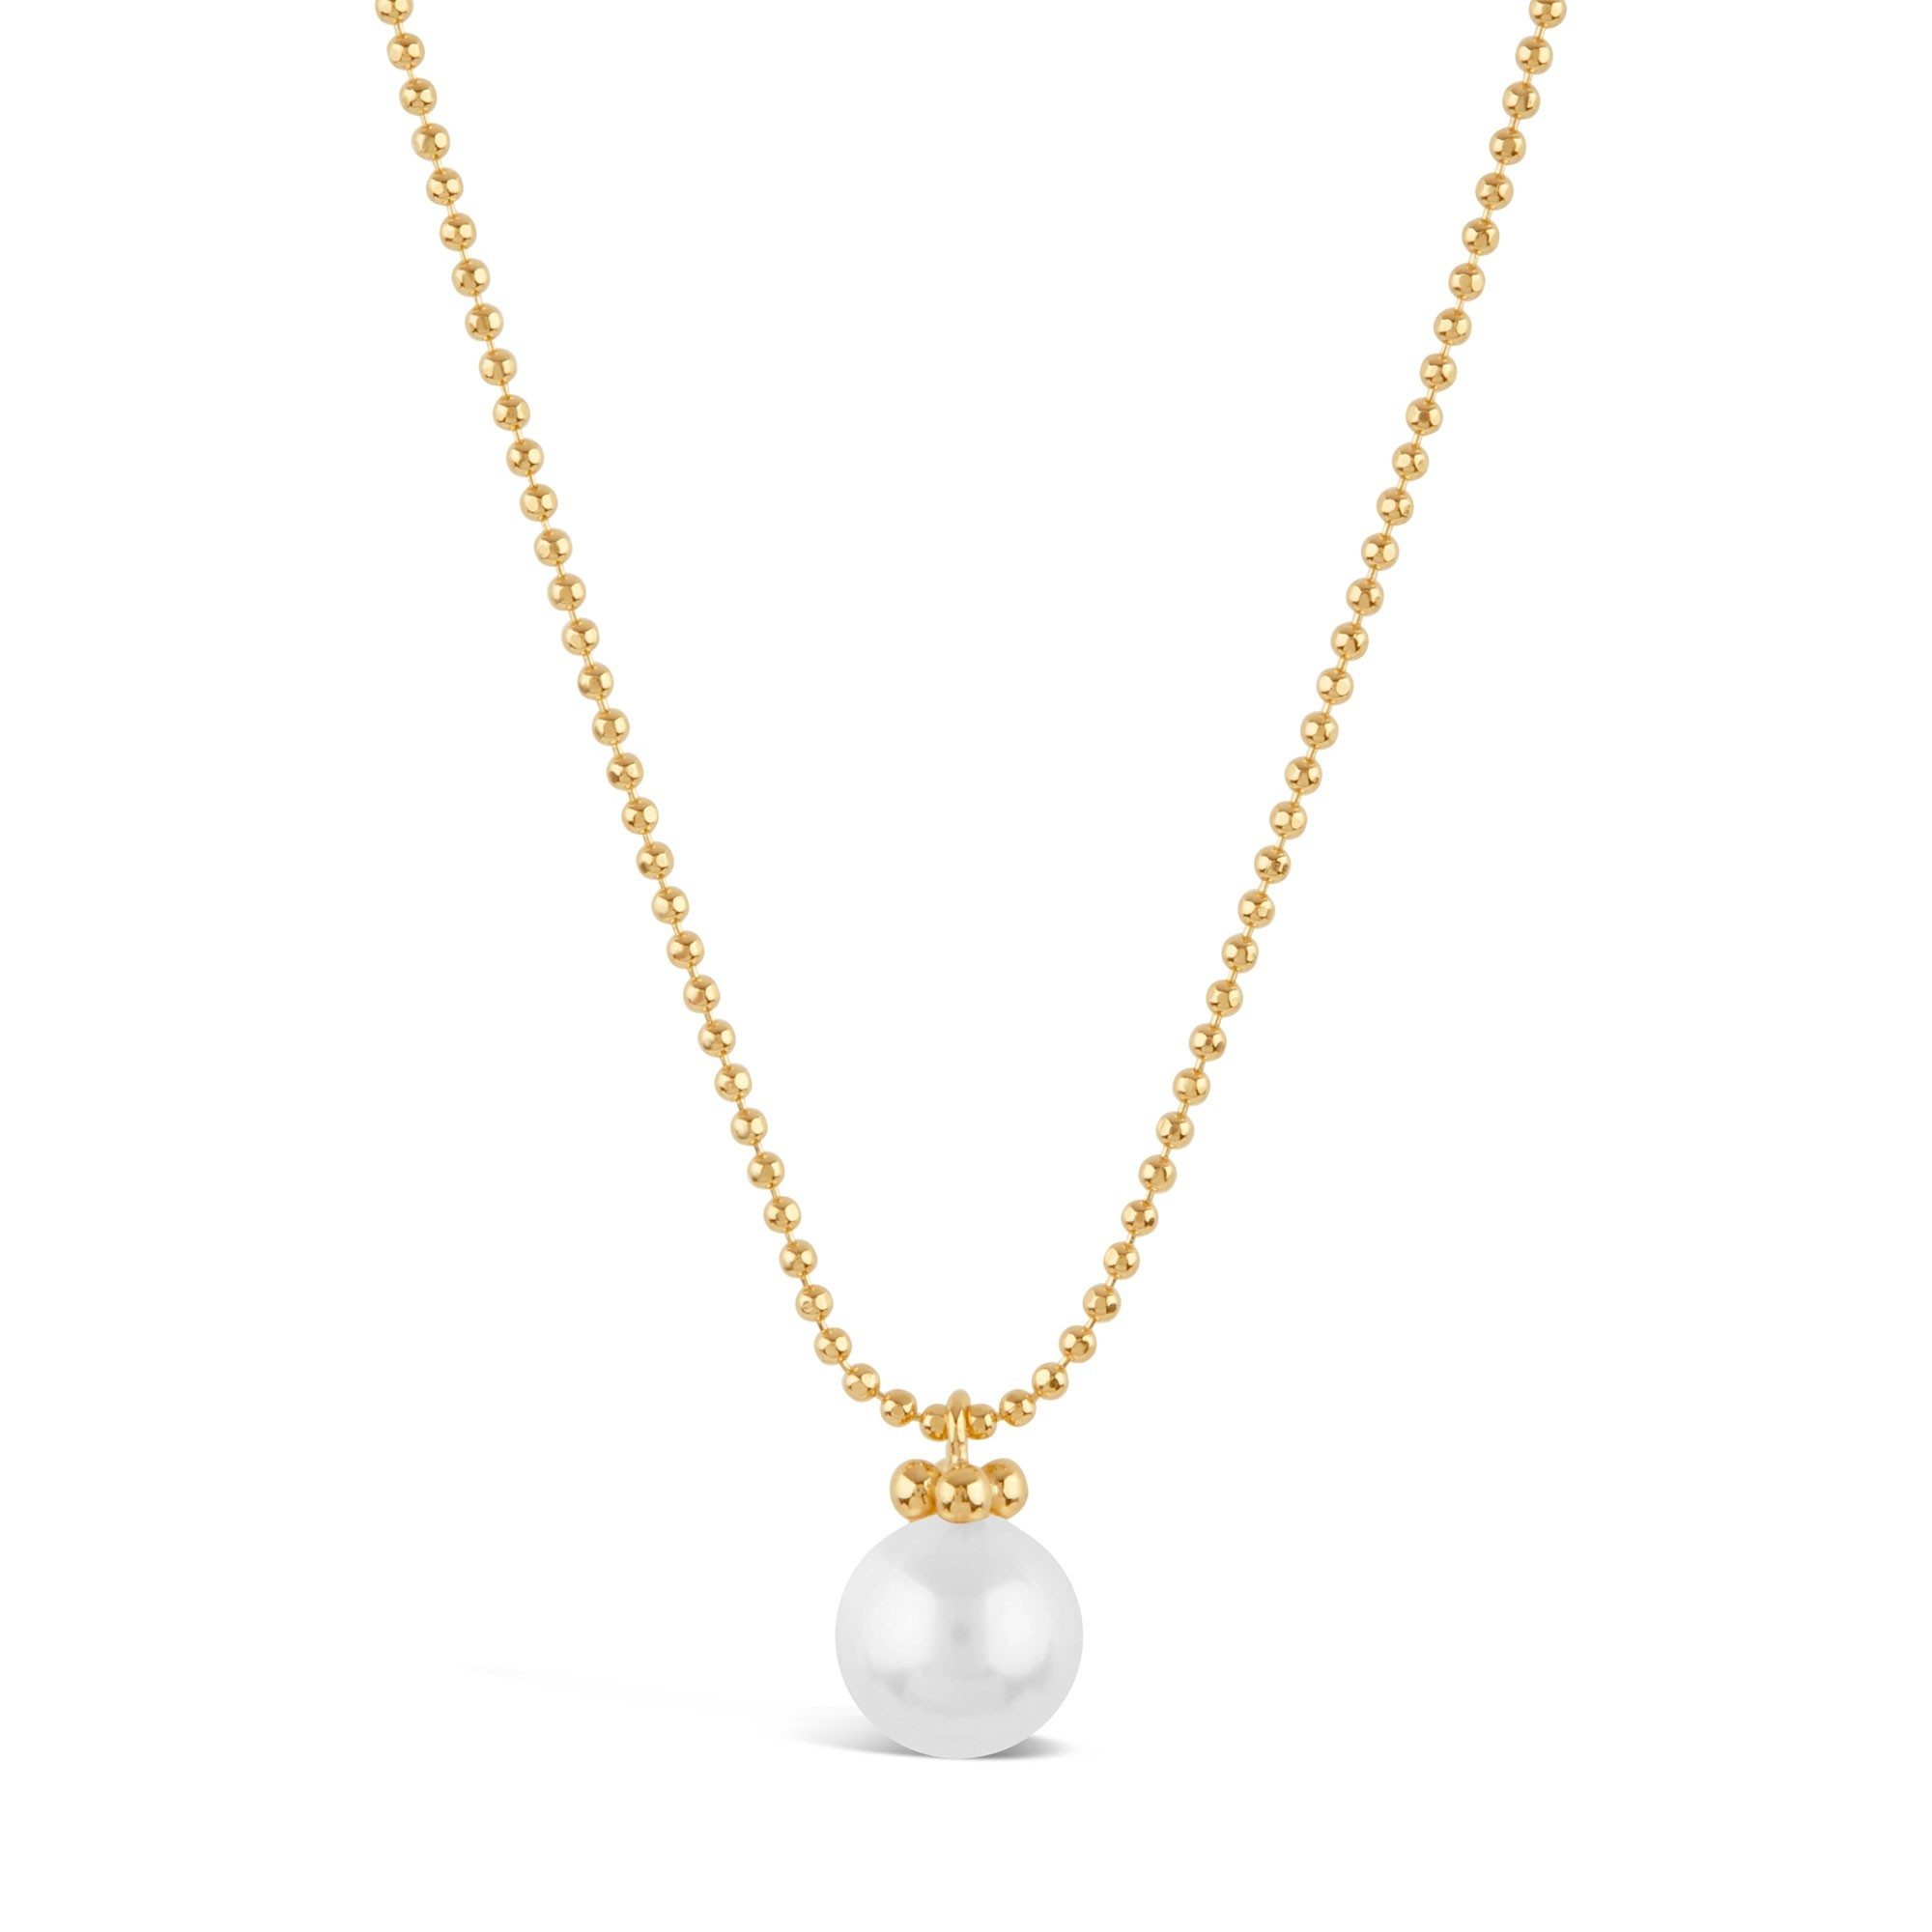 DINNY HALL GOLD PEARL PENDANT WITH FINE FACETED BALL CHAIN